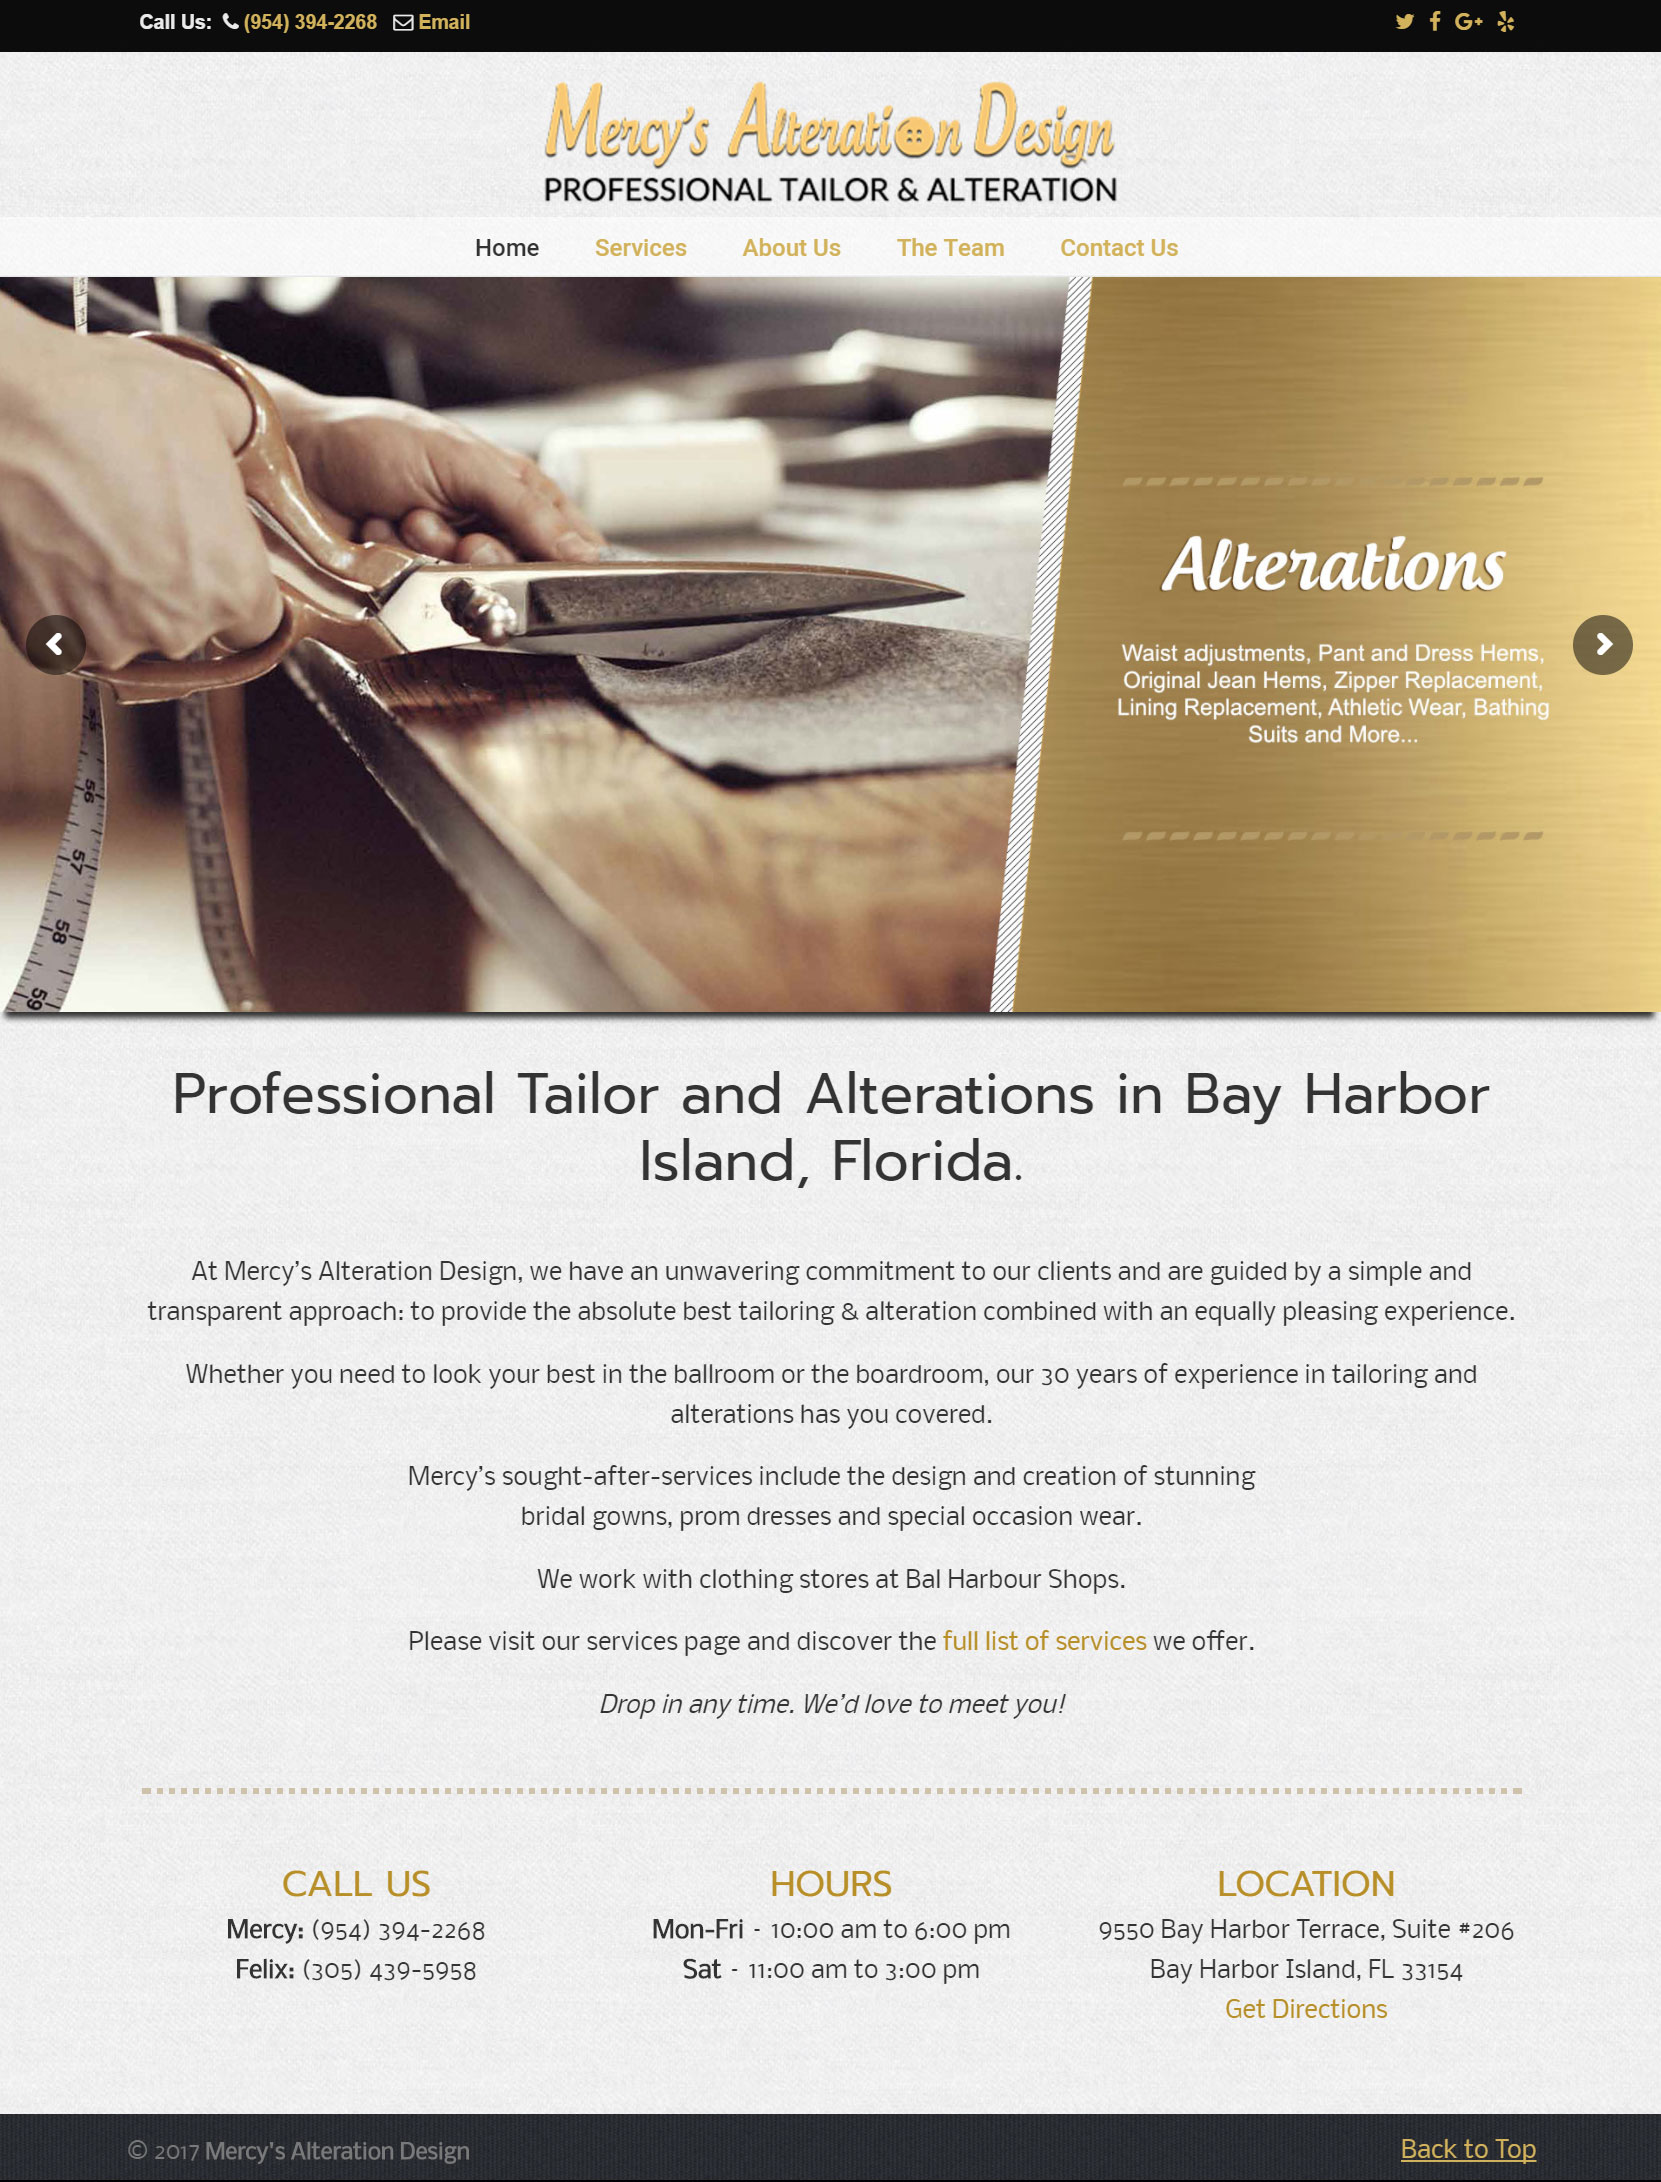 Professional Tailor and Alterations